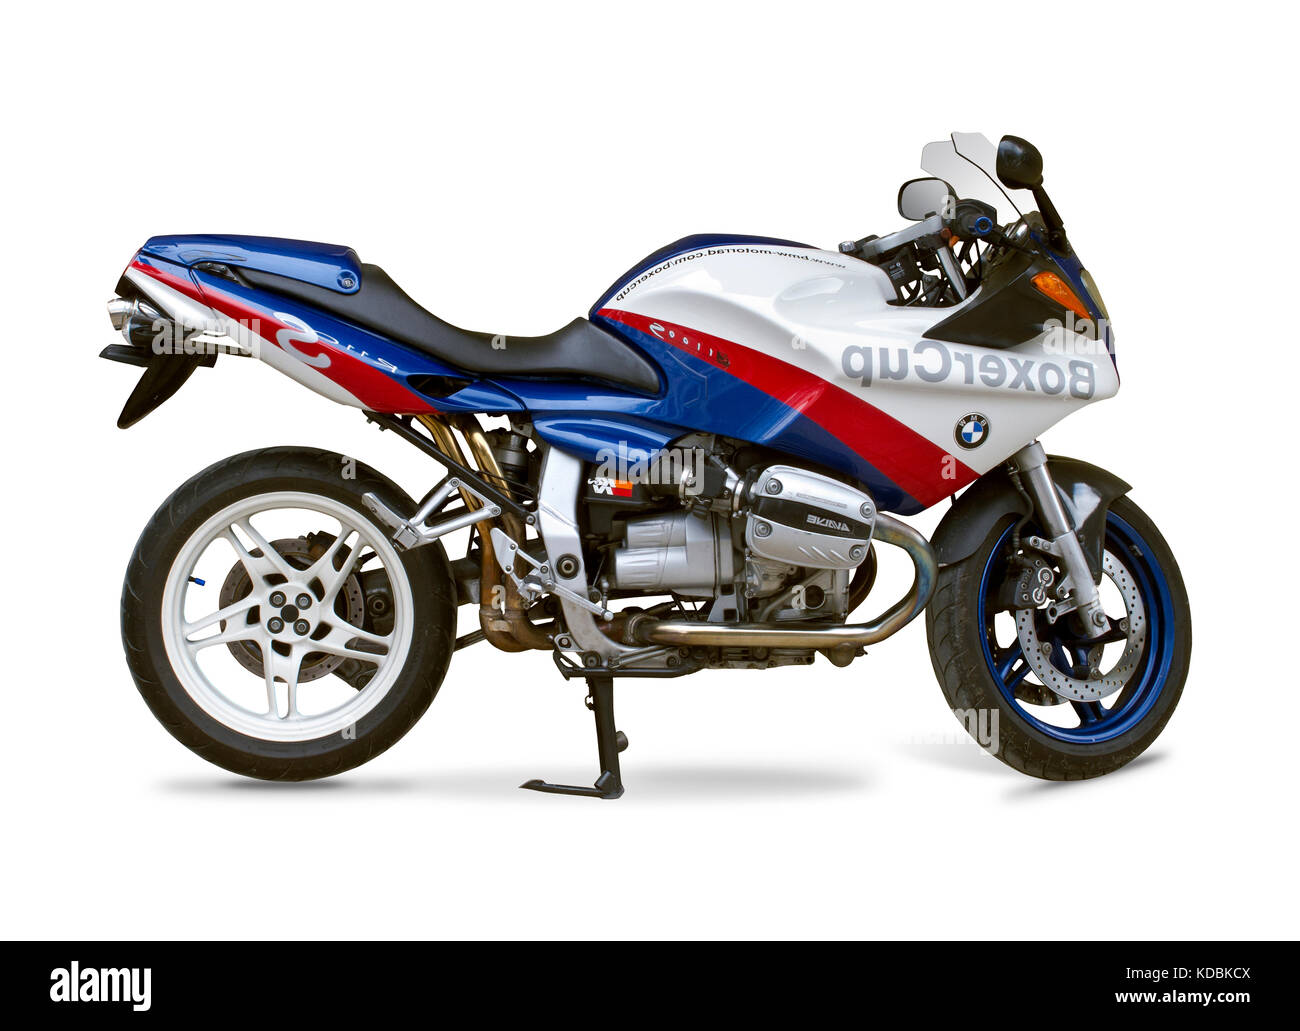 Bmw Motorcycle Isolated On White Stock Photo Alamy